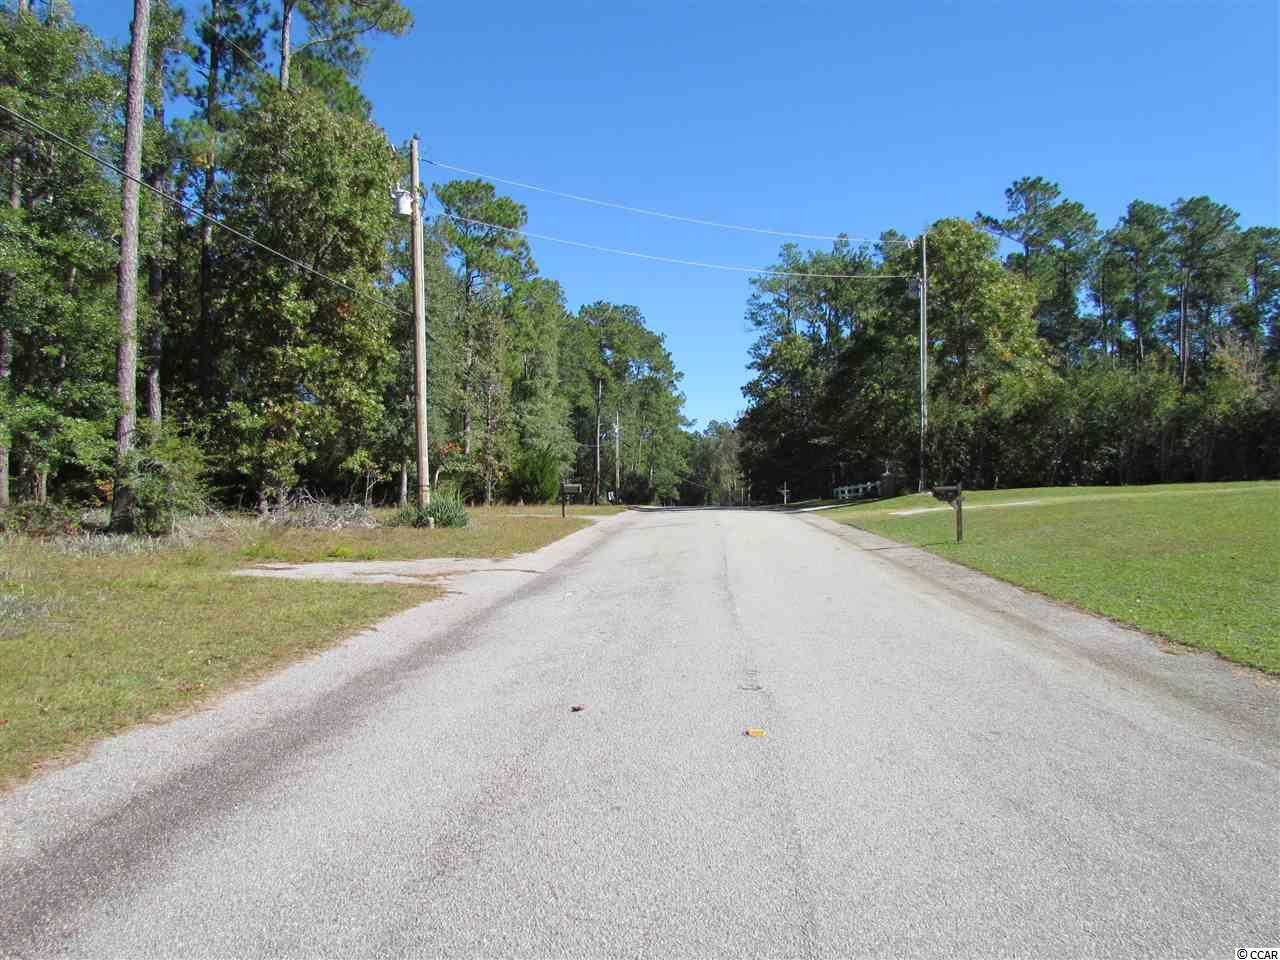 This mostly cleared lot sits on a high bluff overlooking the beautiful Black River.  Spend your days swimming, boating and fishing and your evenings watching the sun go down.  This lot sits on an established street and offers a quiet setting.  Bulk head needs repaired.  There is a dock and covered area at river level but no access due to bulk head issue.